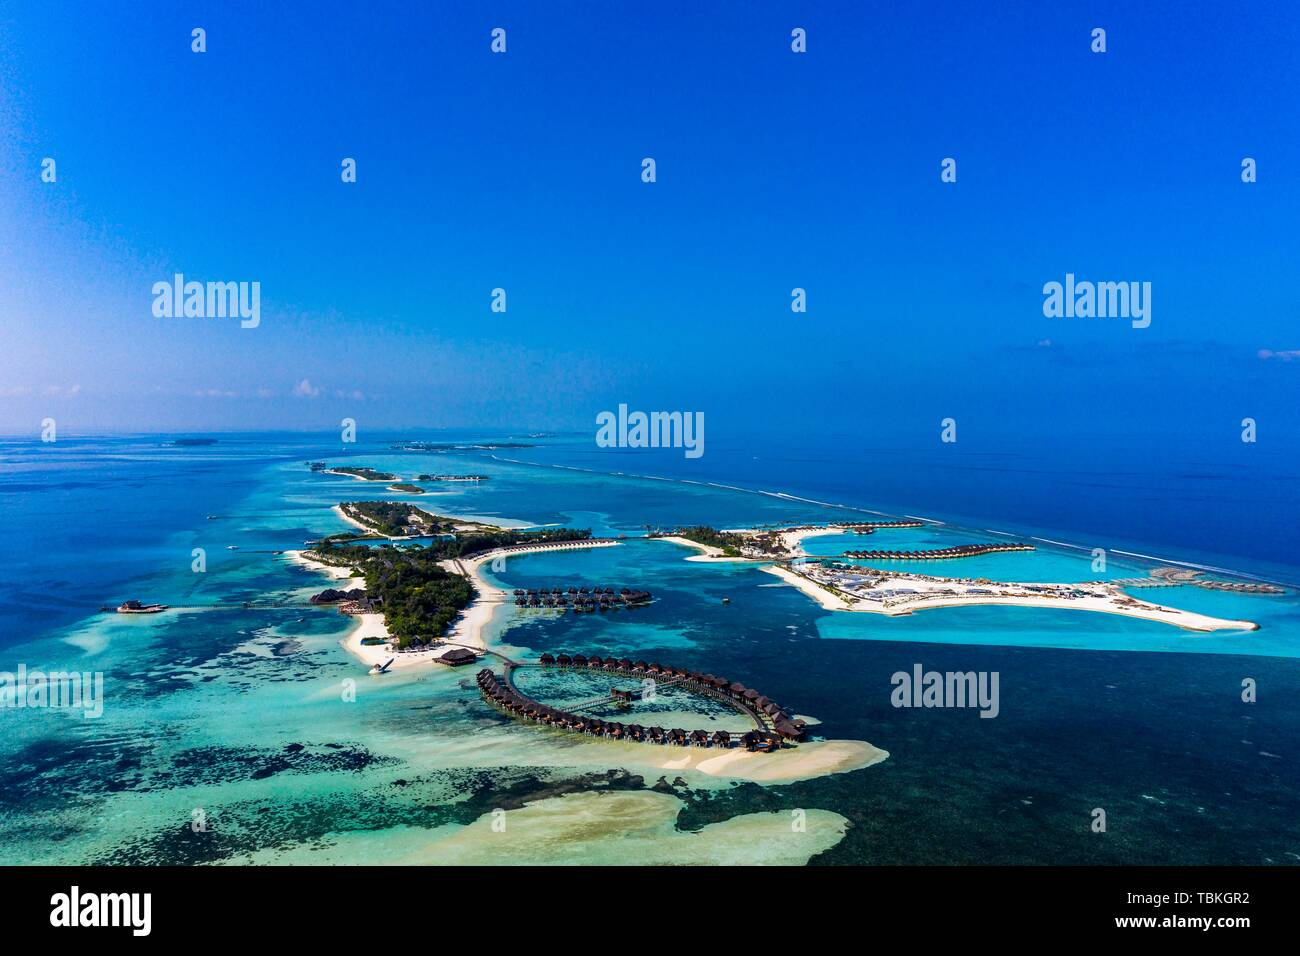 Aerial view, lagoon of the Maldives island Olhuveli and Bodufinolhu respectively Fun Island Resort, South-Male-Atoll, Maledives - Stock Image